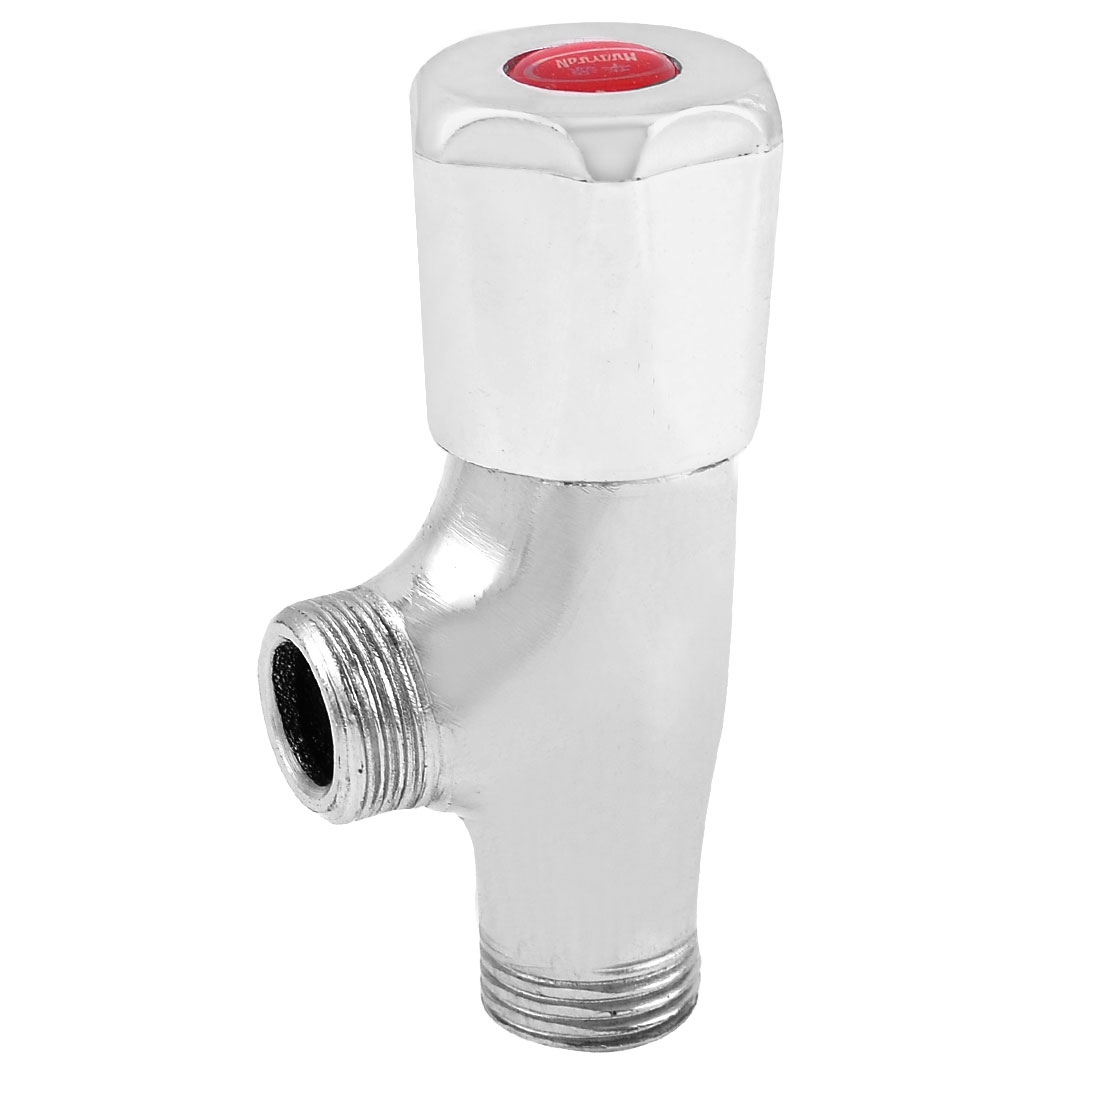 "Silver Tone 1/2"" Male Thread Stop Self Closing Delay Water Pipe Angle Valve"